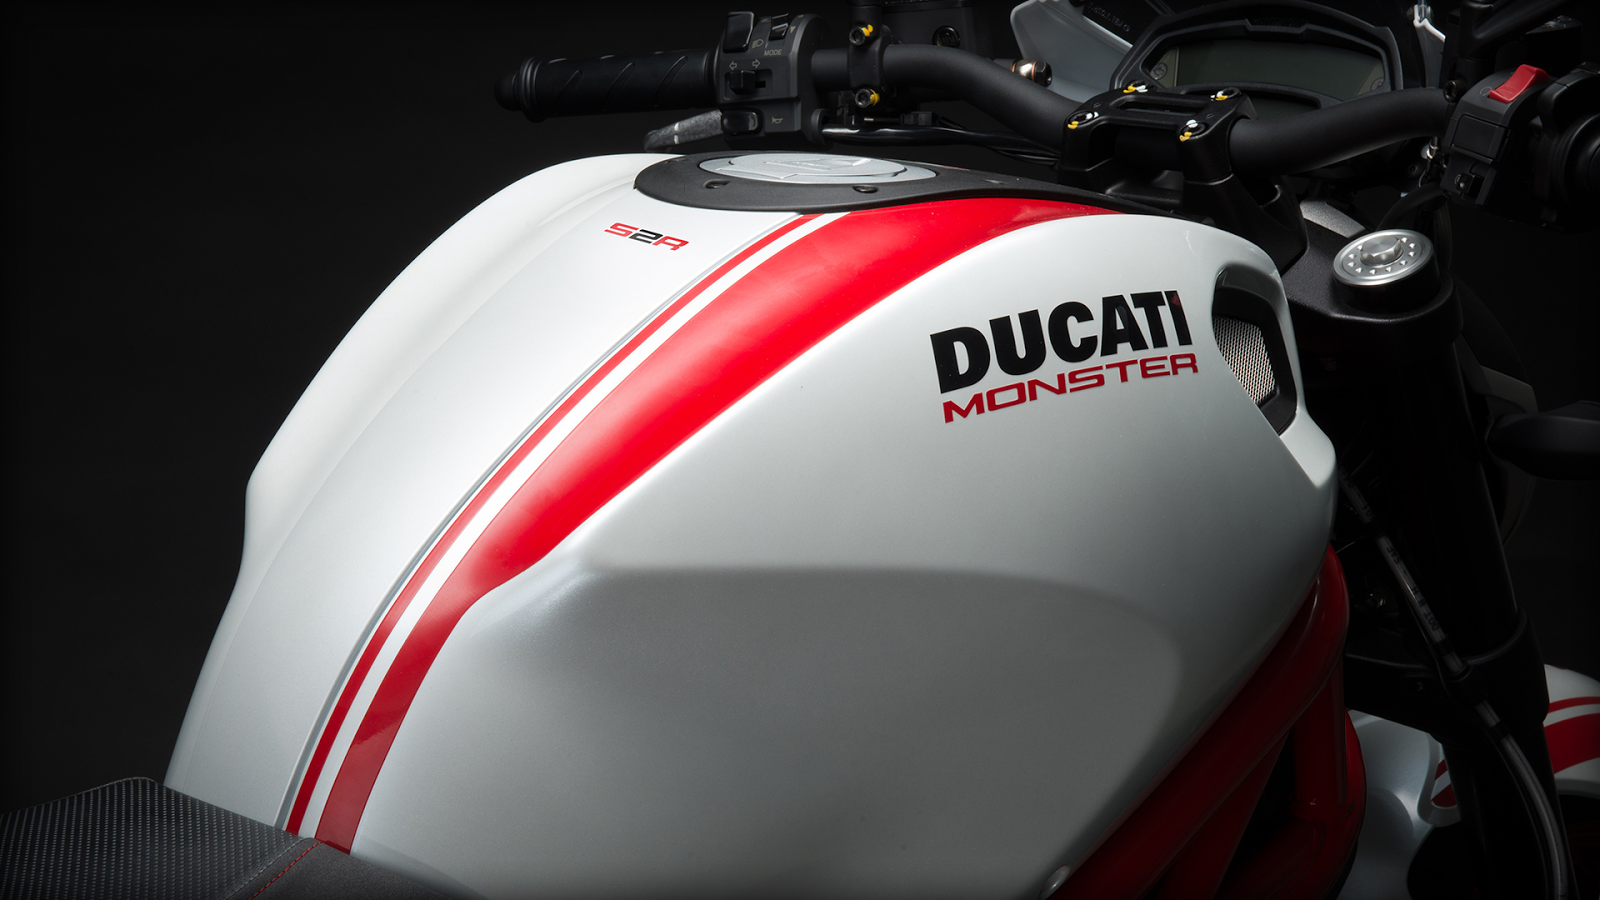 Ducati Monster 796 Corse Stripe 2015 images #146217